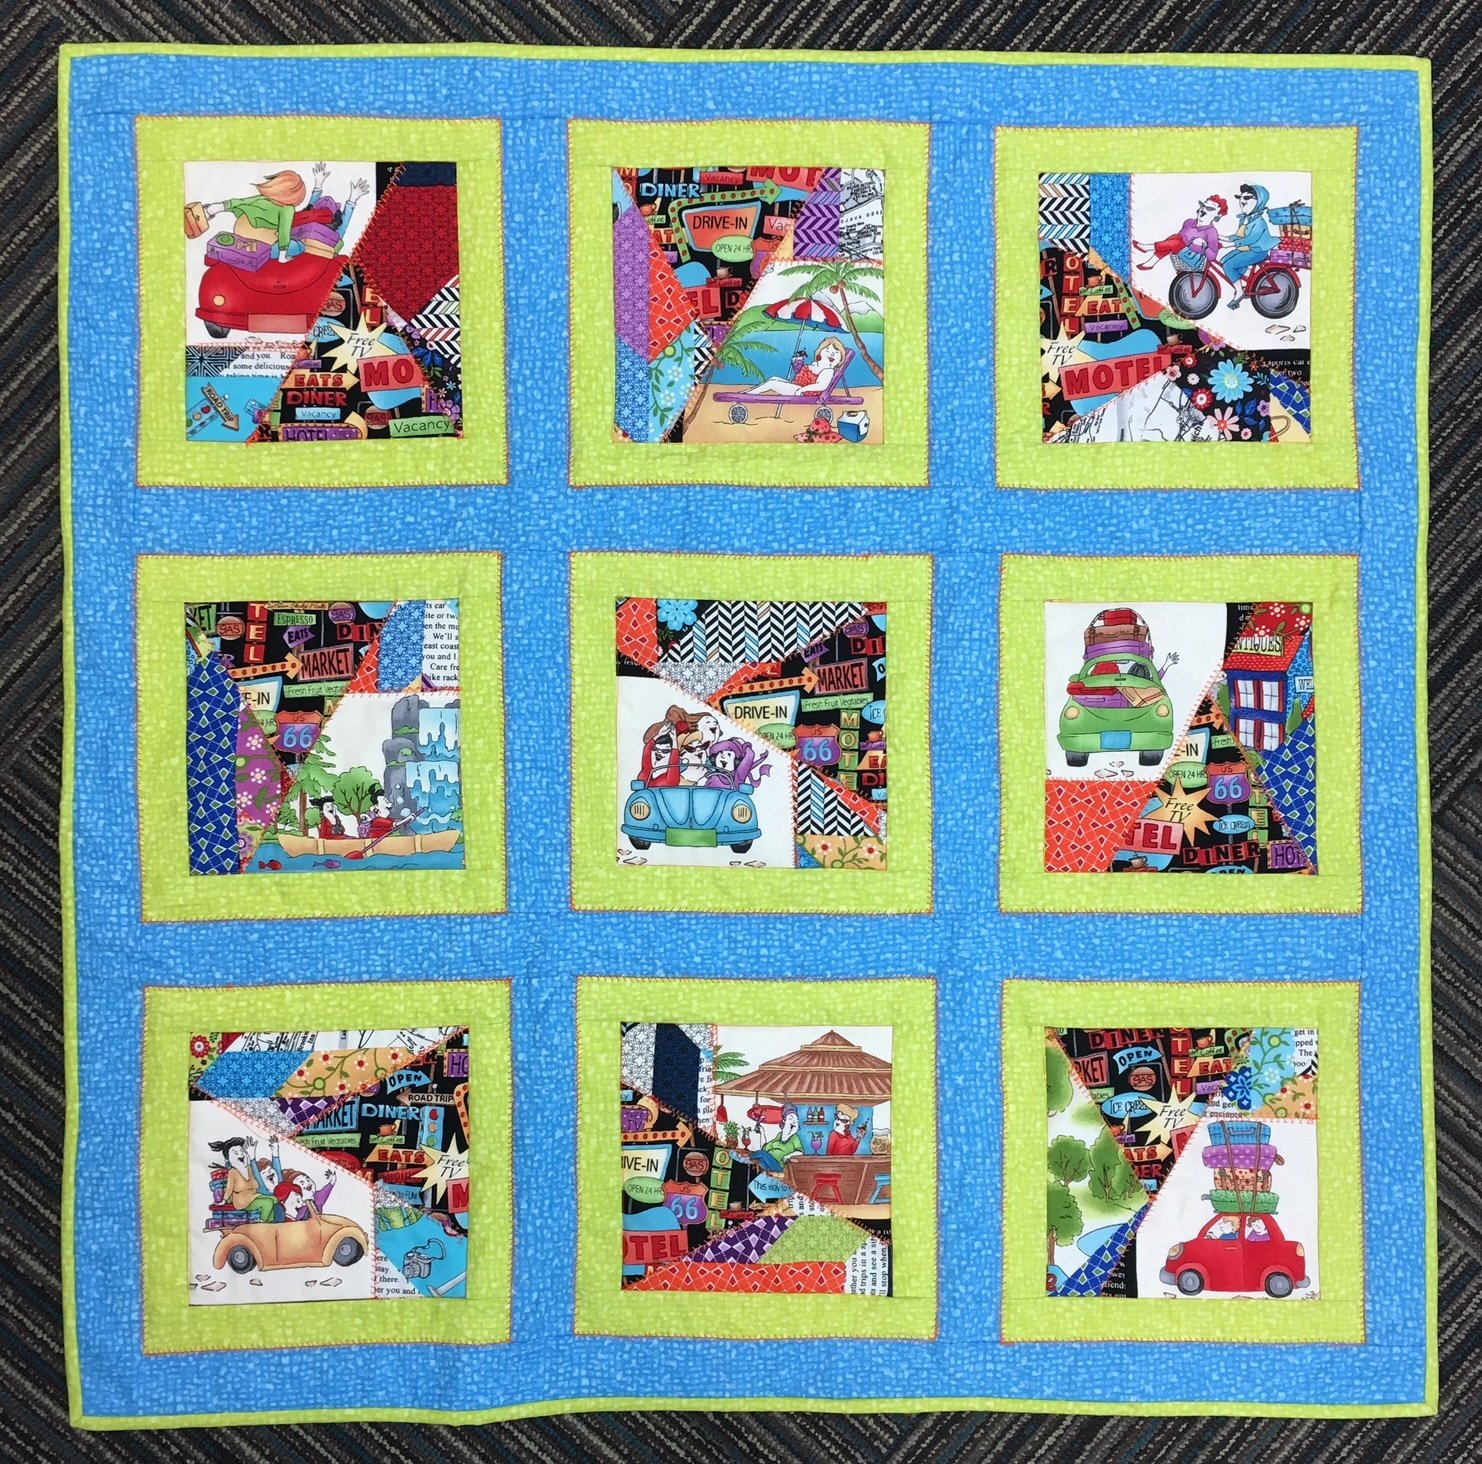 Crazy Quilter's Road Trip Kit 36 x 36